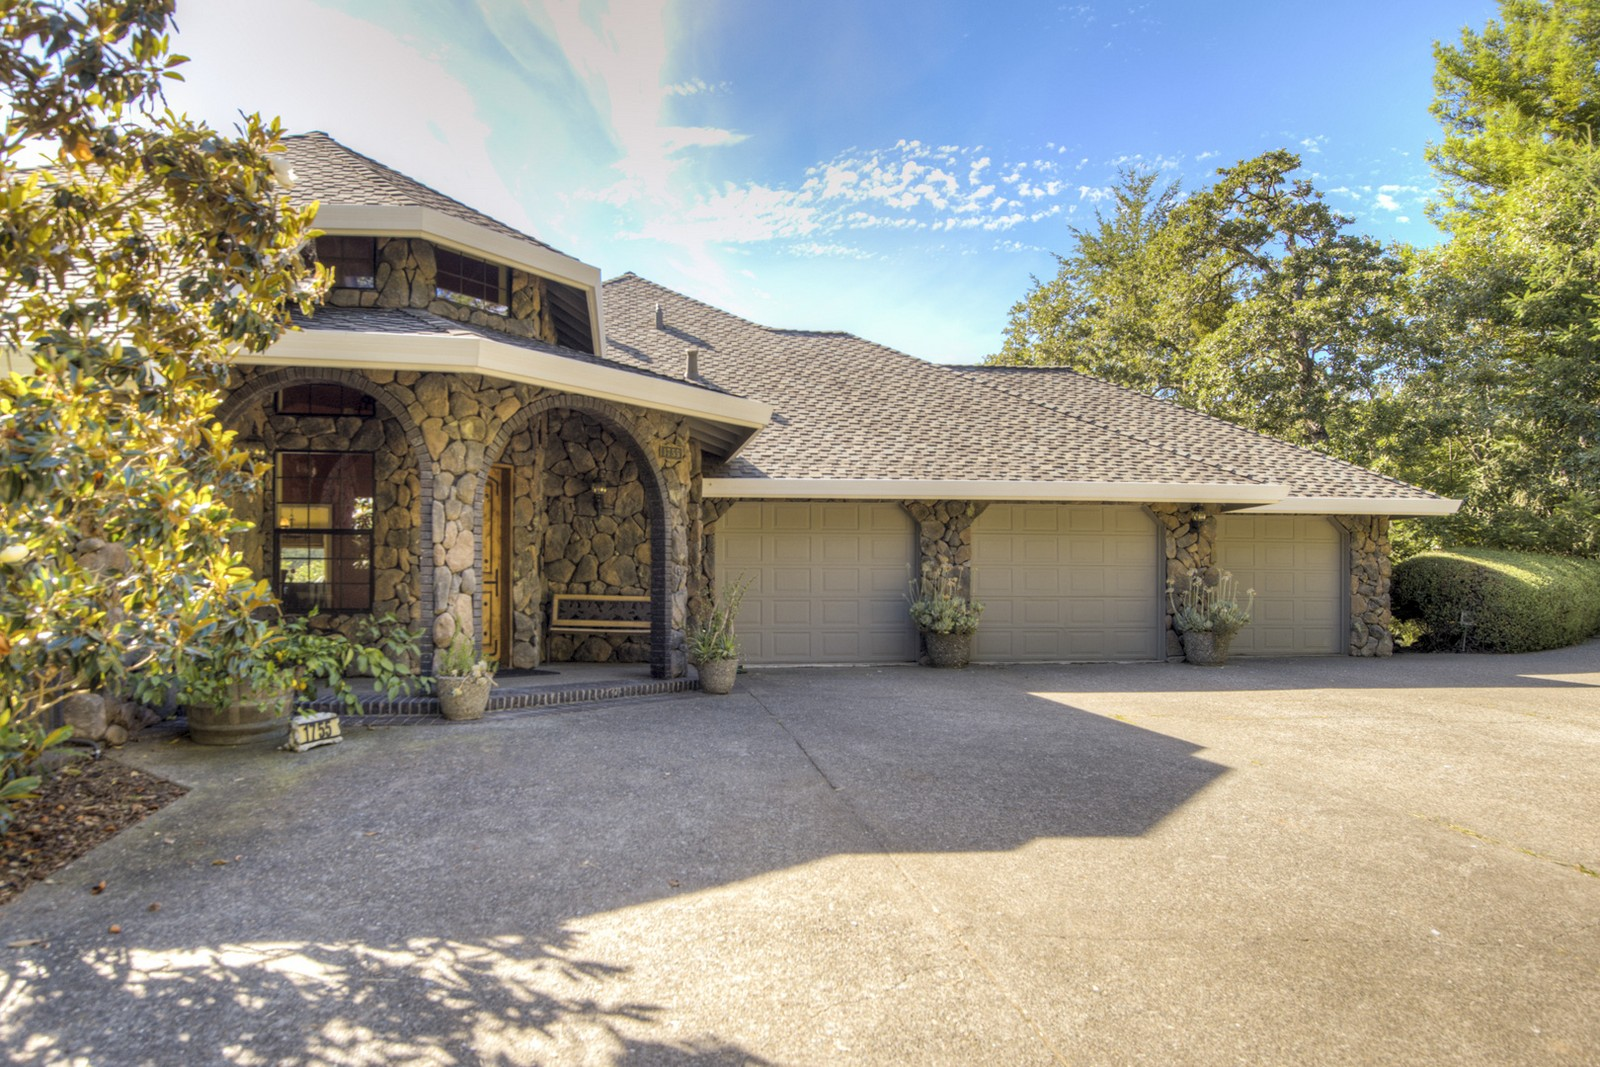 Additional photo for property listing at 1755 Crystal Springs Court  Santa Rosa, California 95404 Estados Unidos